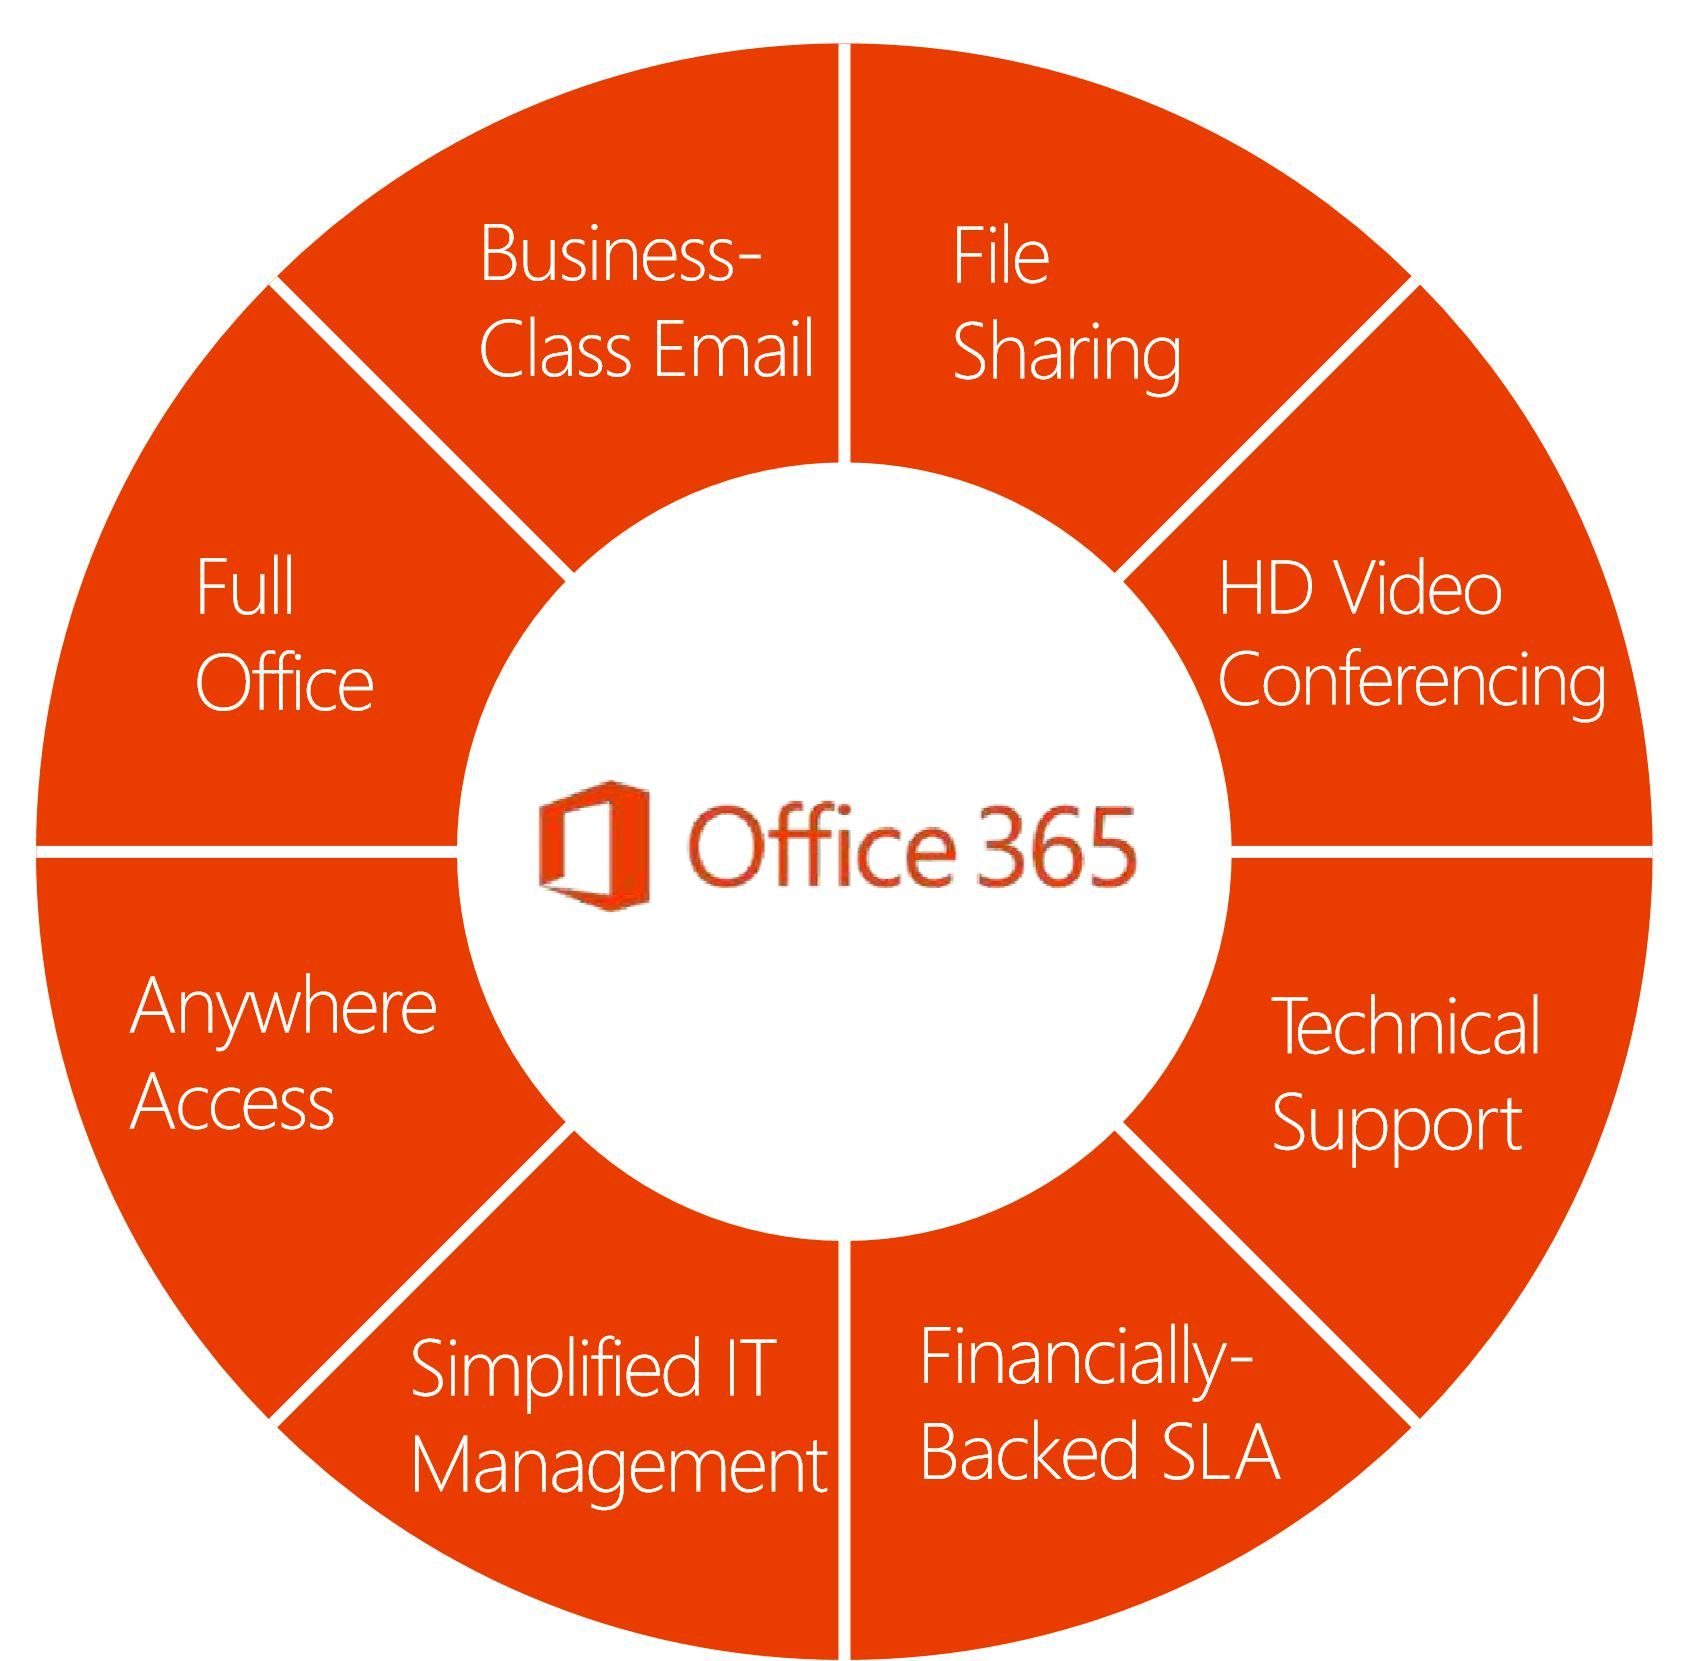 O365 OJ FOR BUSINESS! Business read, Office 365